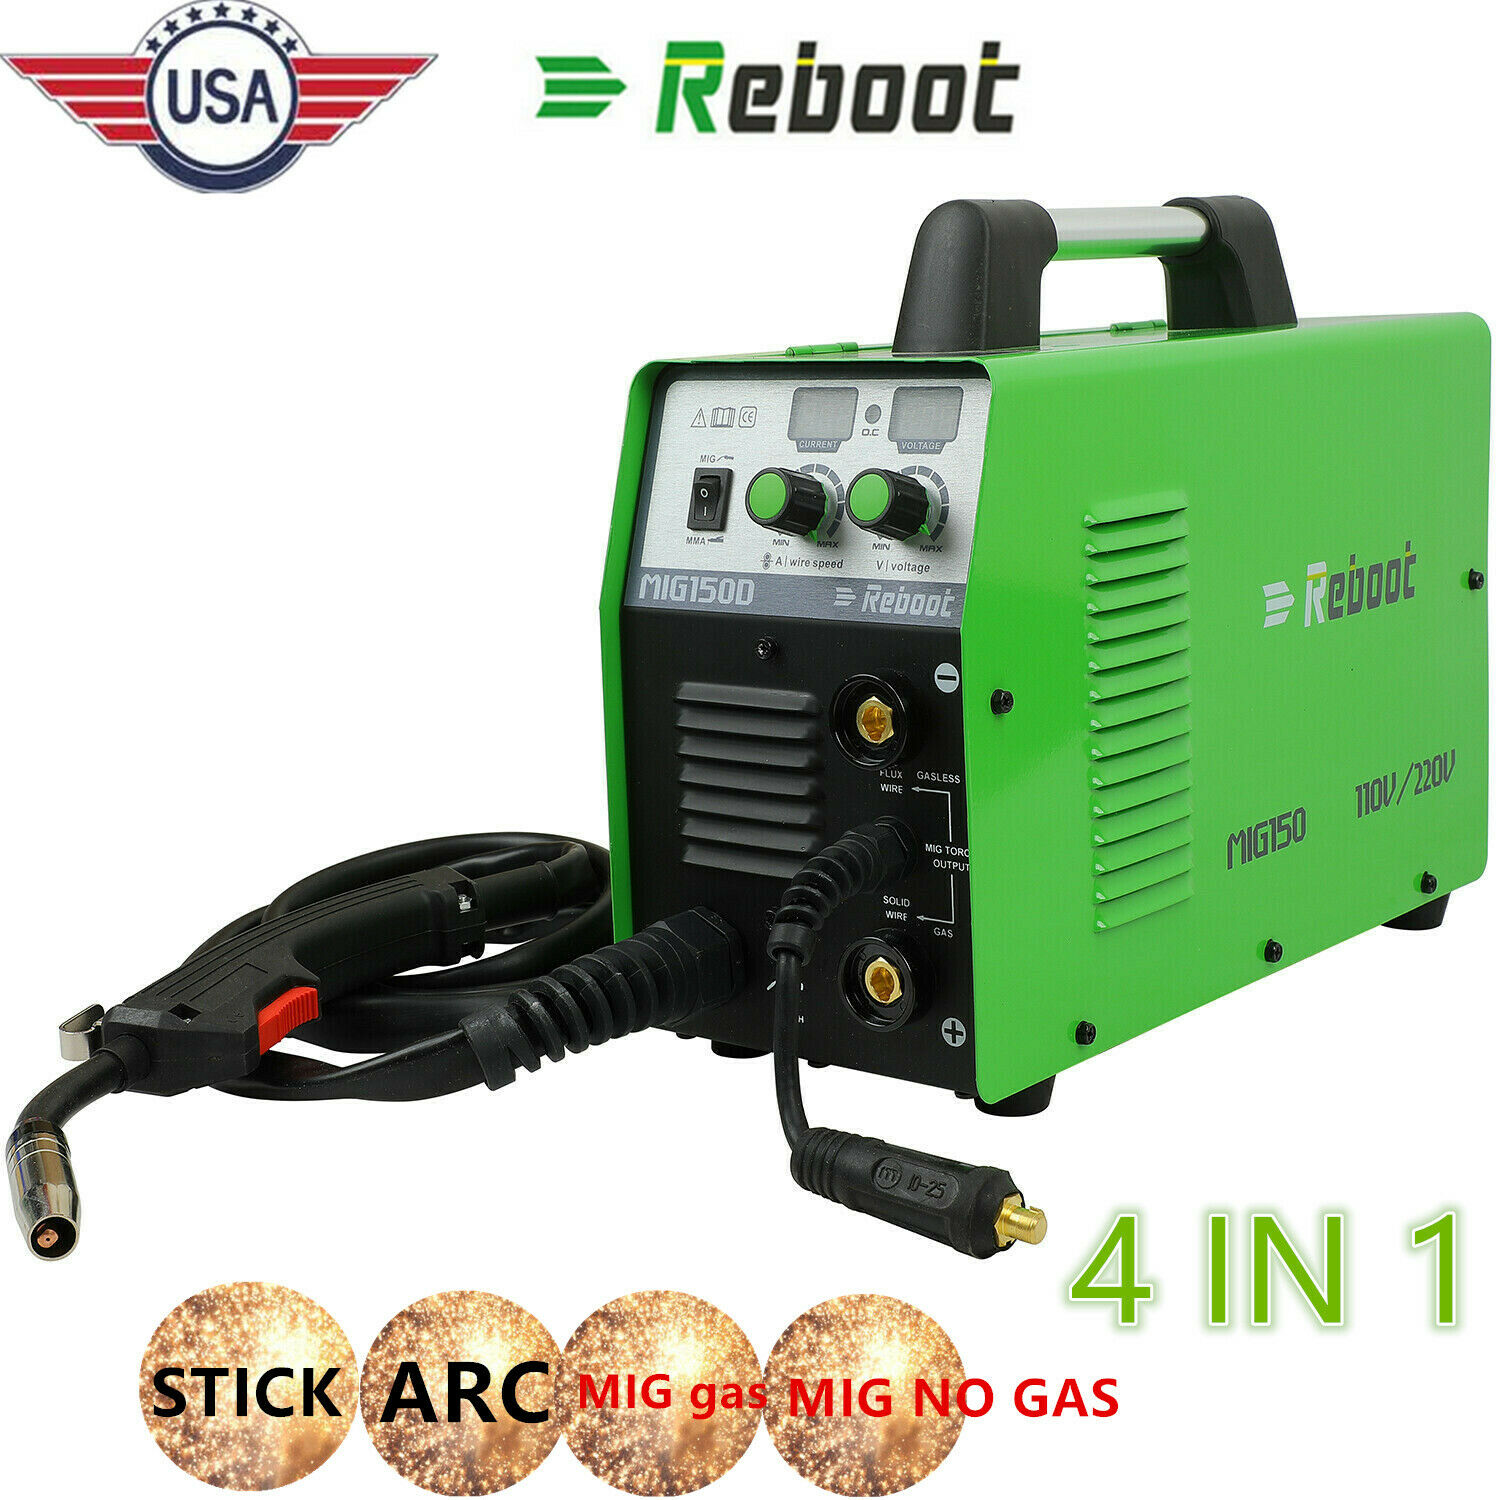 MIG Welder 150 Gas/Gasless 110/220V ARC Stick MMA Inverter 3 IN 1 150A Welding. Buy it now for 244.99